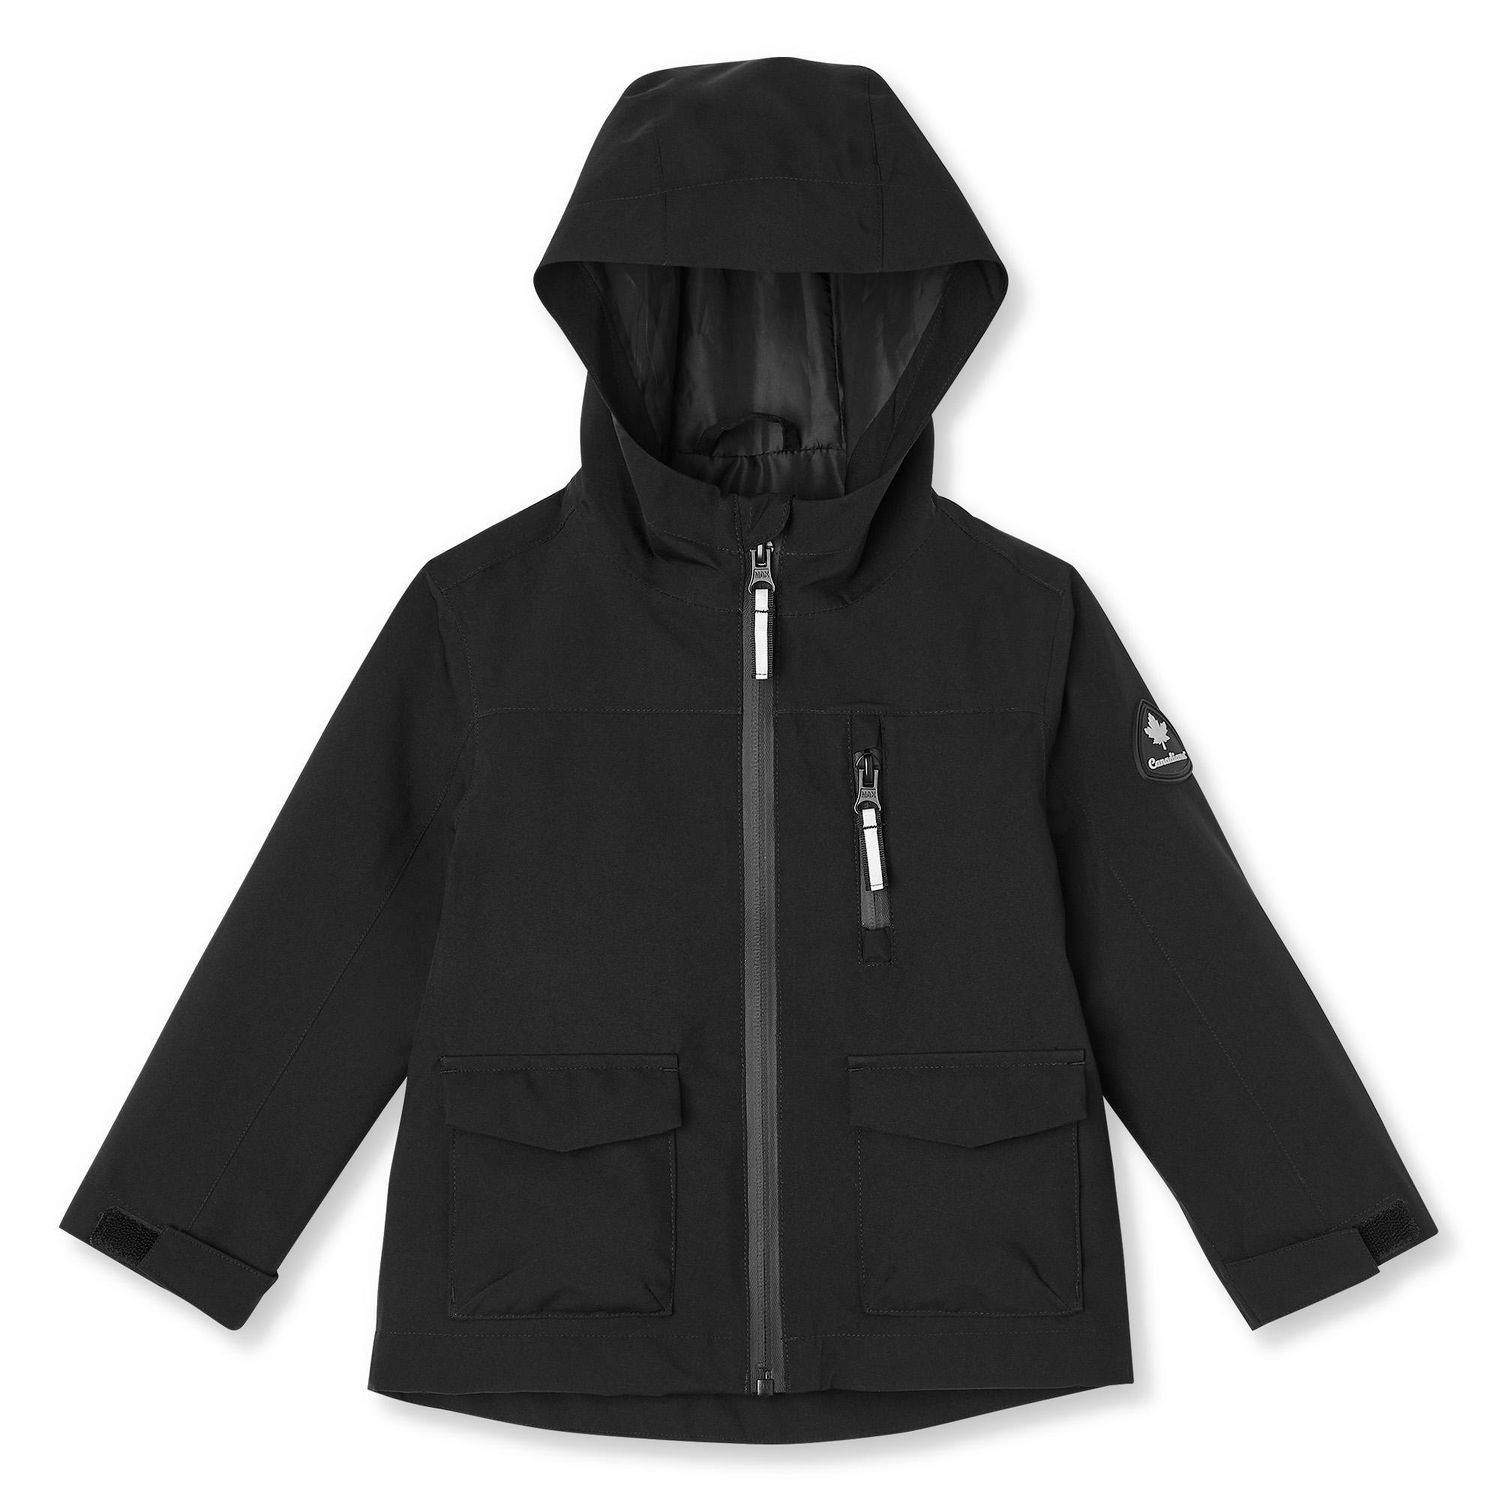 3a5afc0ccd2 Canadiana Toddler Boys  Rain Jacket - image 1 of 2 zoomed image